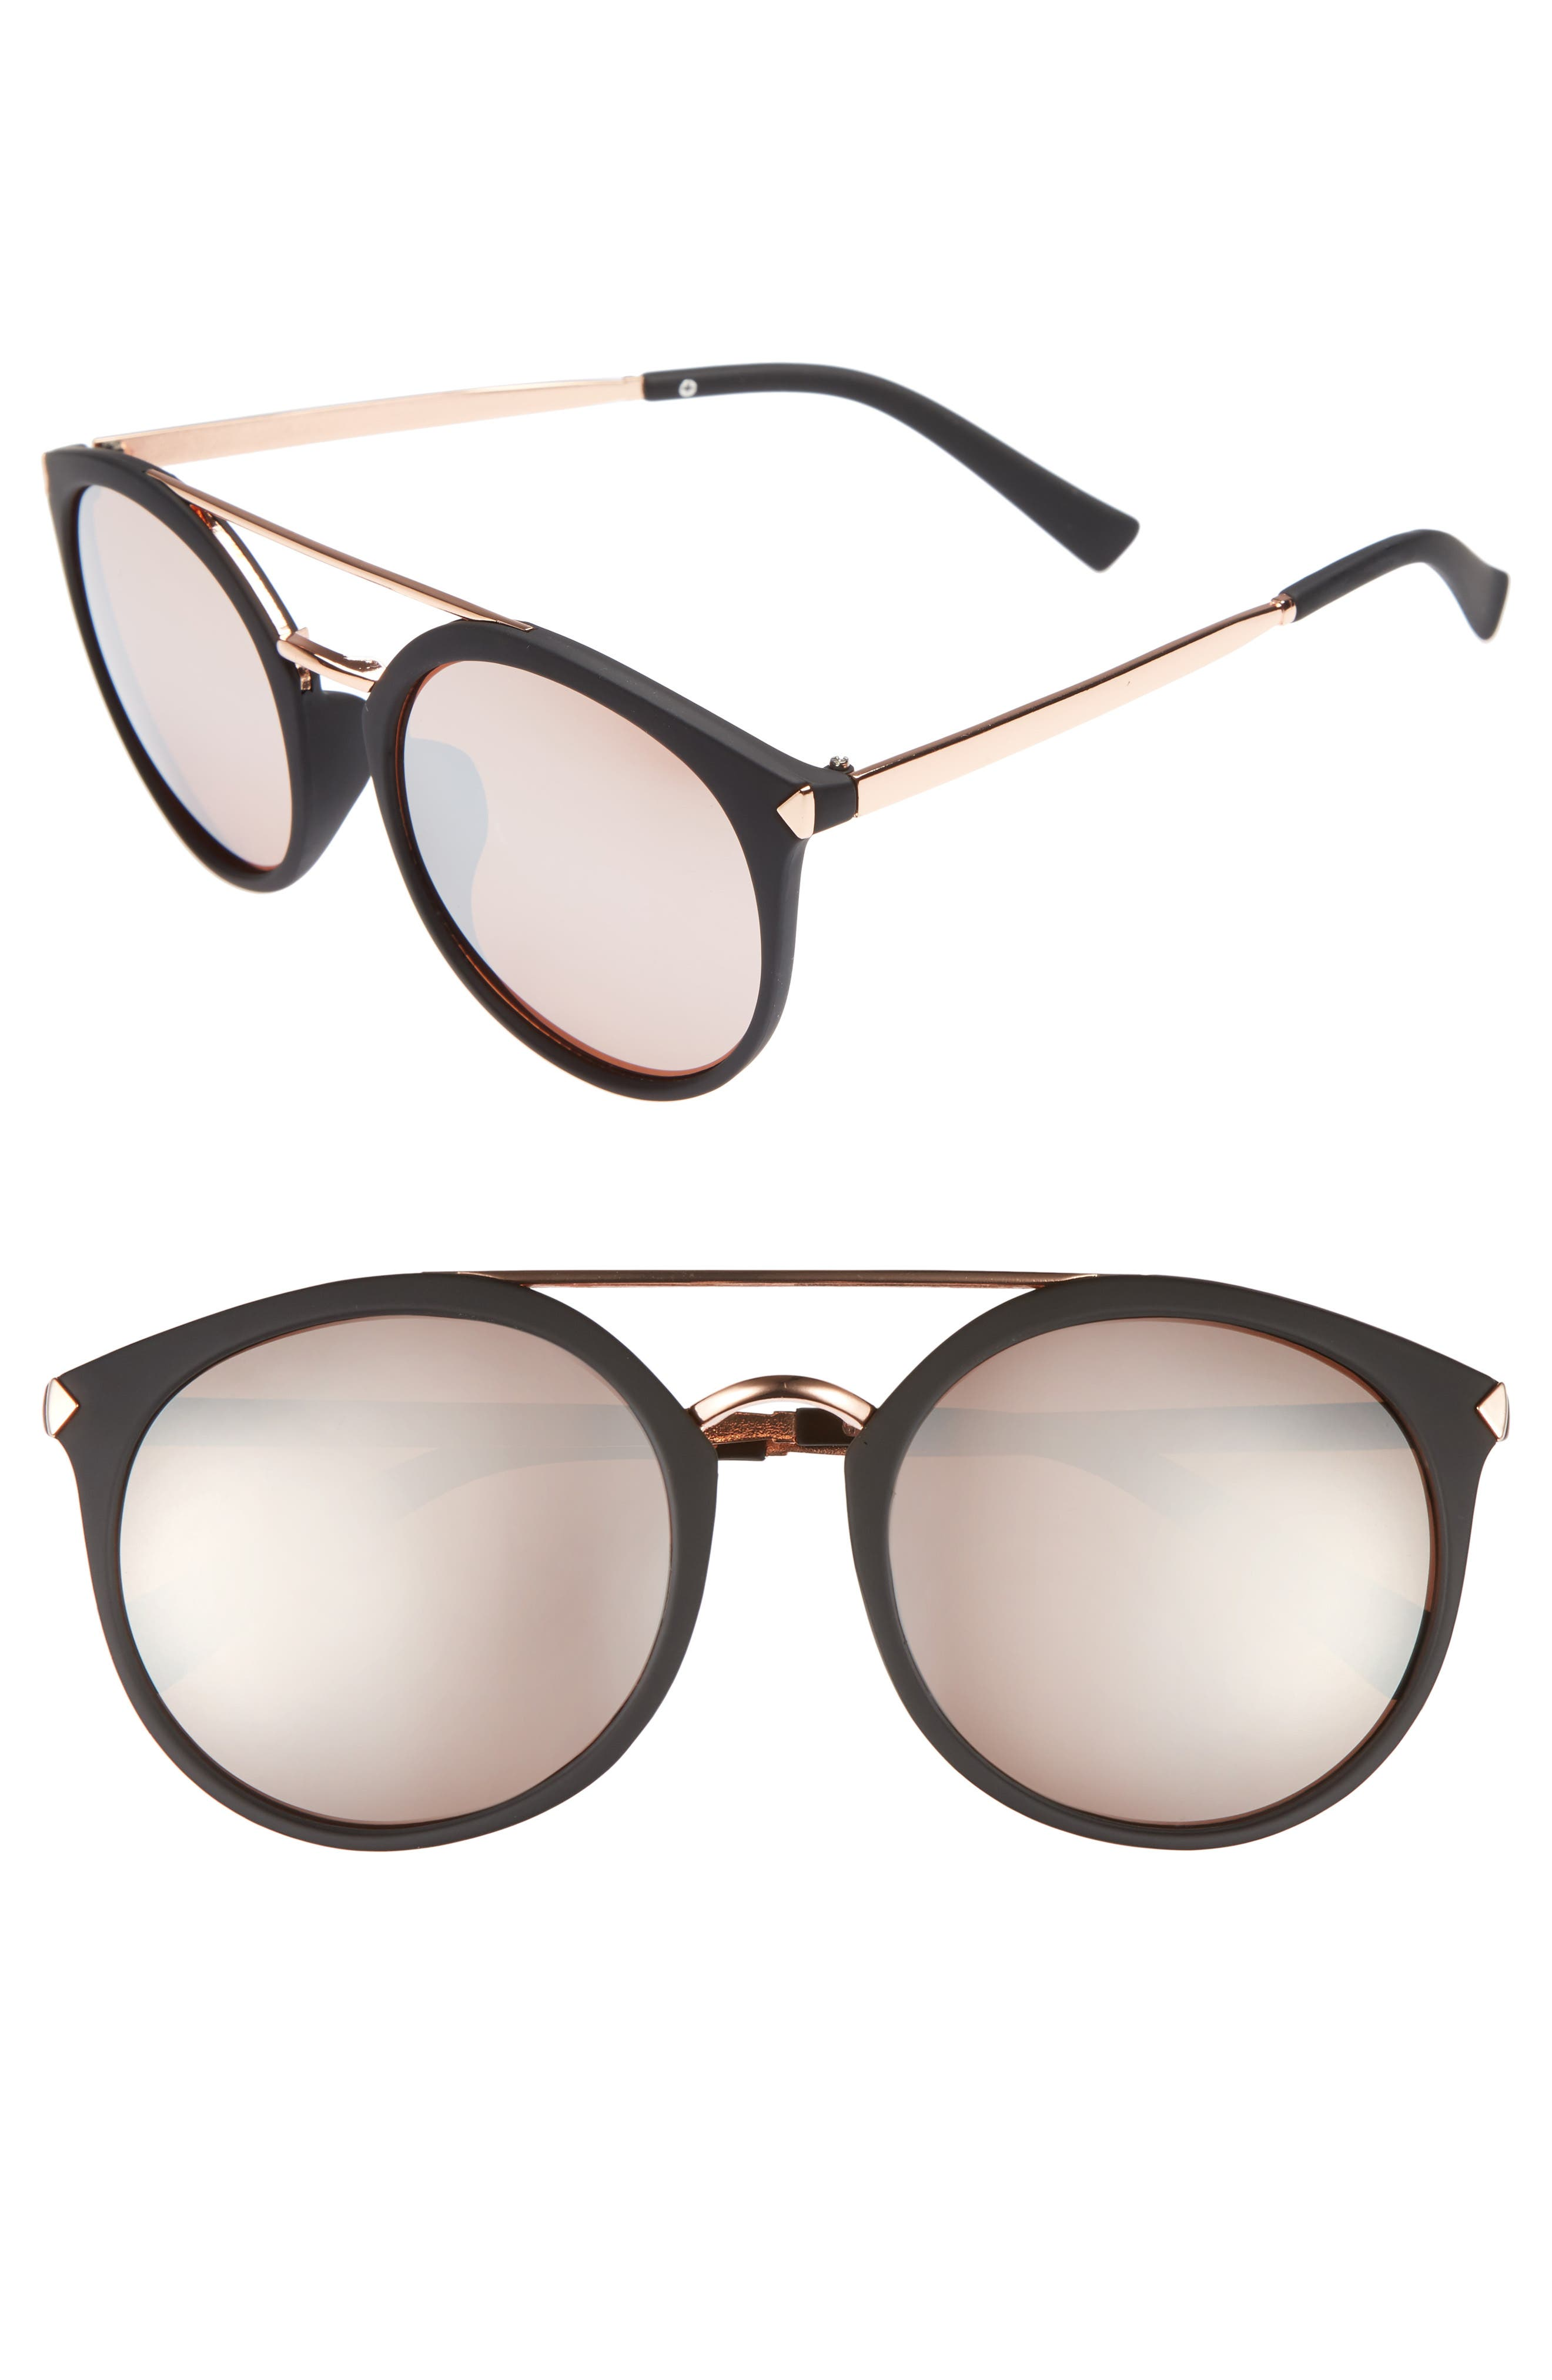 55mm Mirrored Sunglasses,                         Main,                         color, Black/ Rose Gold